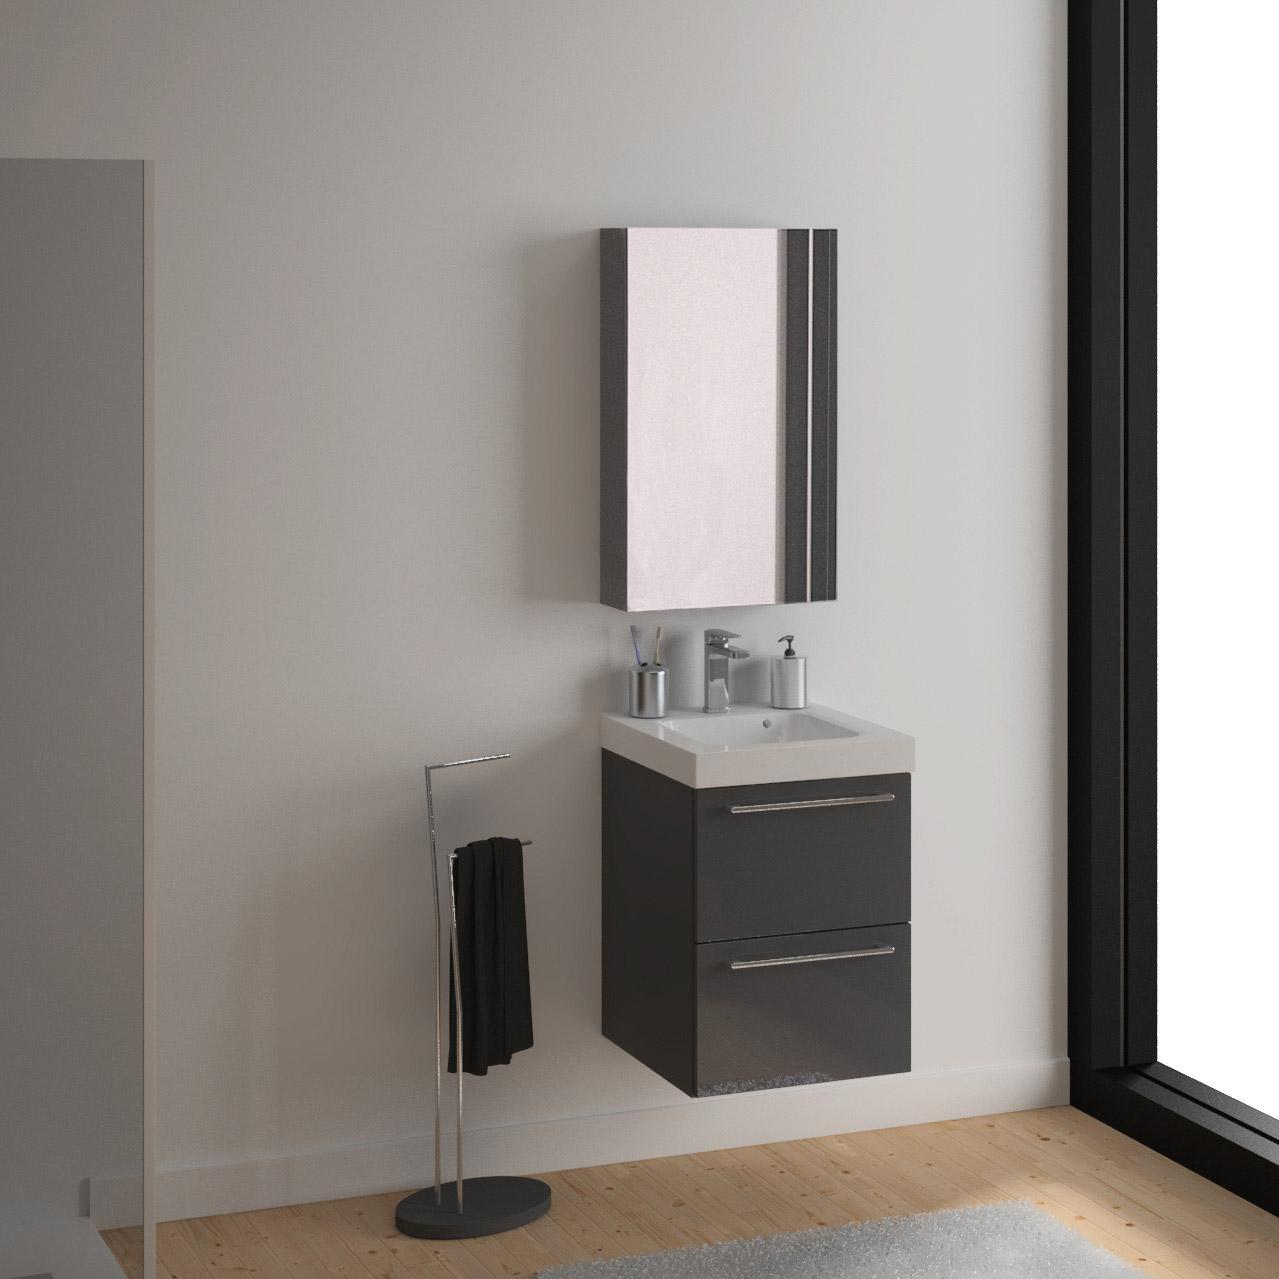 meuble de salle de bains remix gris simple vasque 2 tiroirs leroy merlin. Black Bedroom Furniture Sets. Home Design Ideas